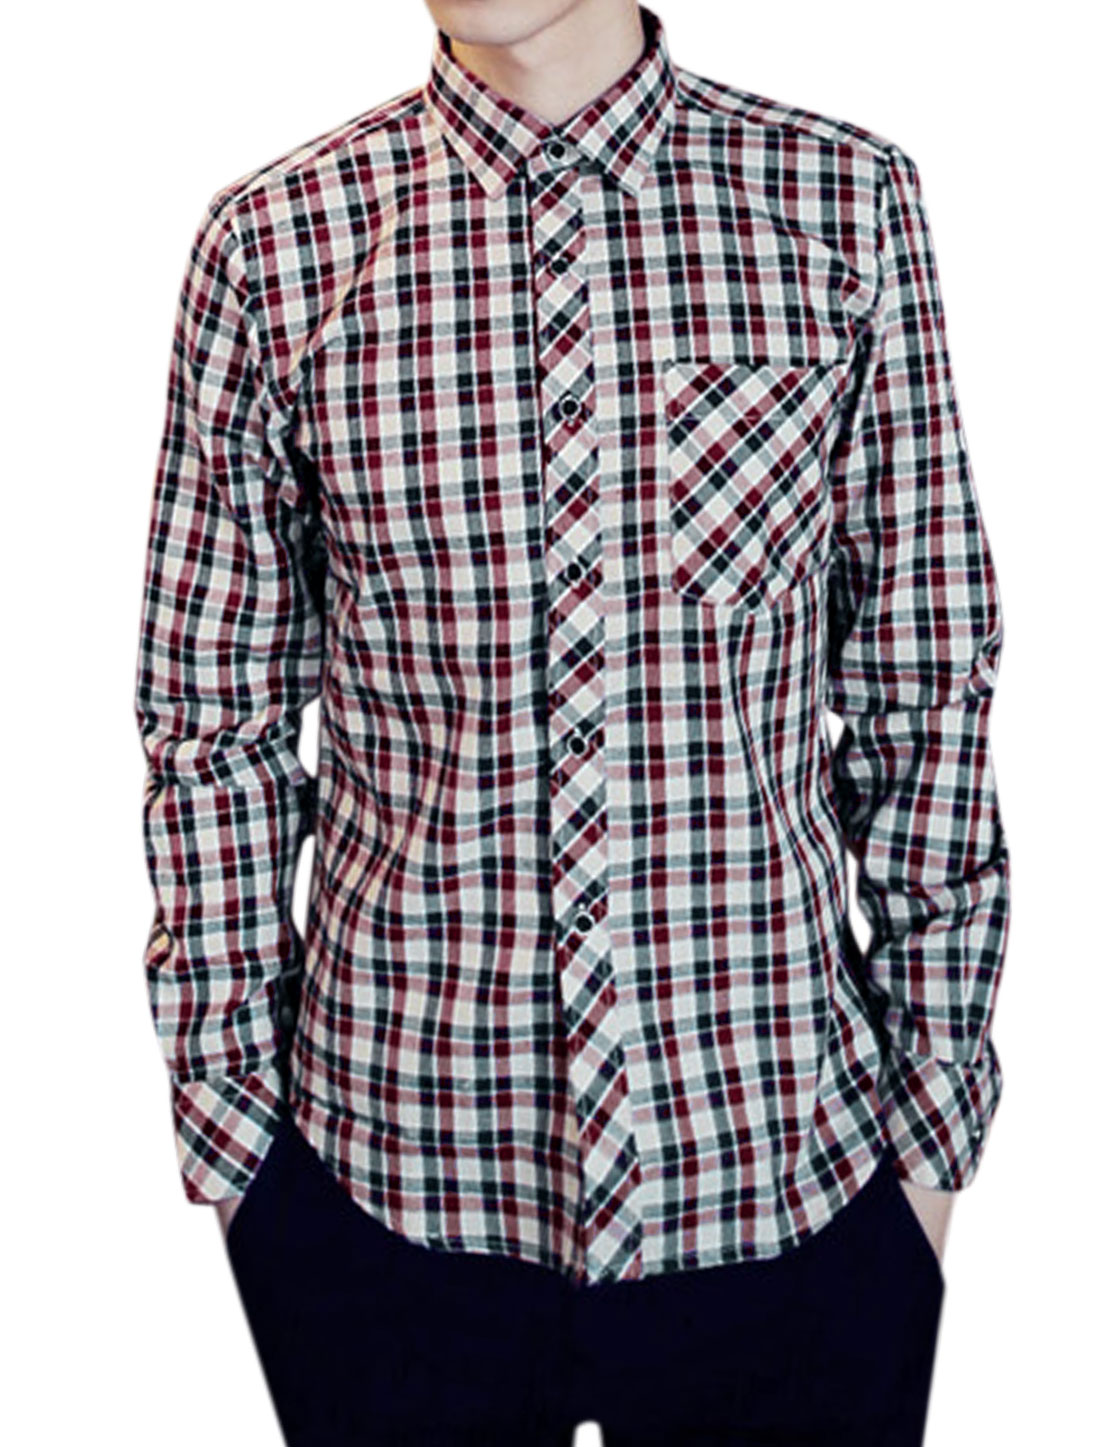 Men Fashion All Over Plaids Print One Patch Pocket NEW Shirt Red Khaki M